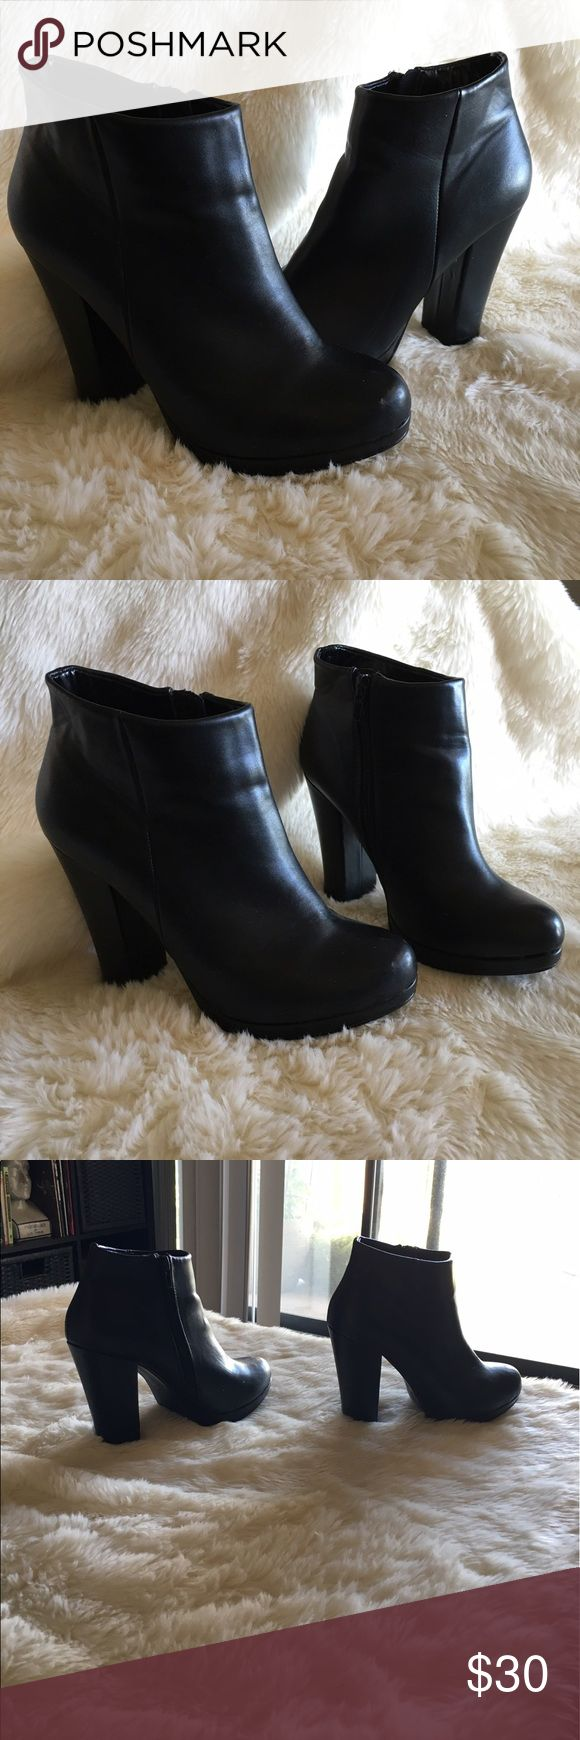 🔮Black Faux Leather 4 inch Heeled Booties🔮 These leather looking booties are absolutely gooorgeous. I only wote them once, but have since been diagnosed with a spinal condition so those 4 inch heels are a no-no! These will work with pretty much anything, with jeans or a sexy dress. They're a true seven and the heel is actually a 1/4 inch taller than 4 inches. The bottoms and insides don't have significant wear and I'm not sure if the brand. I got them at a boutique and the label is a D💕…